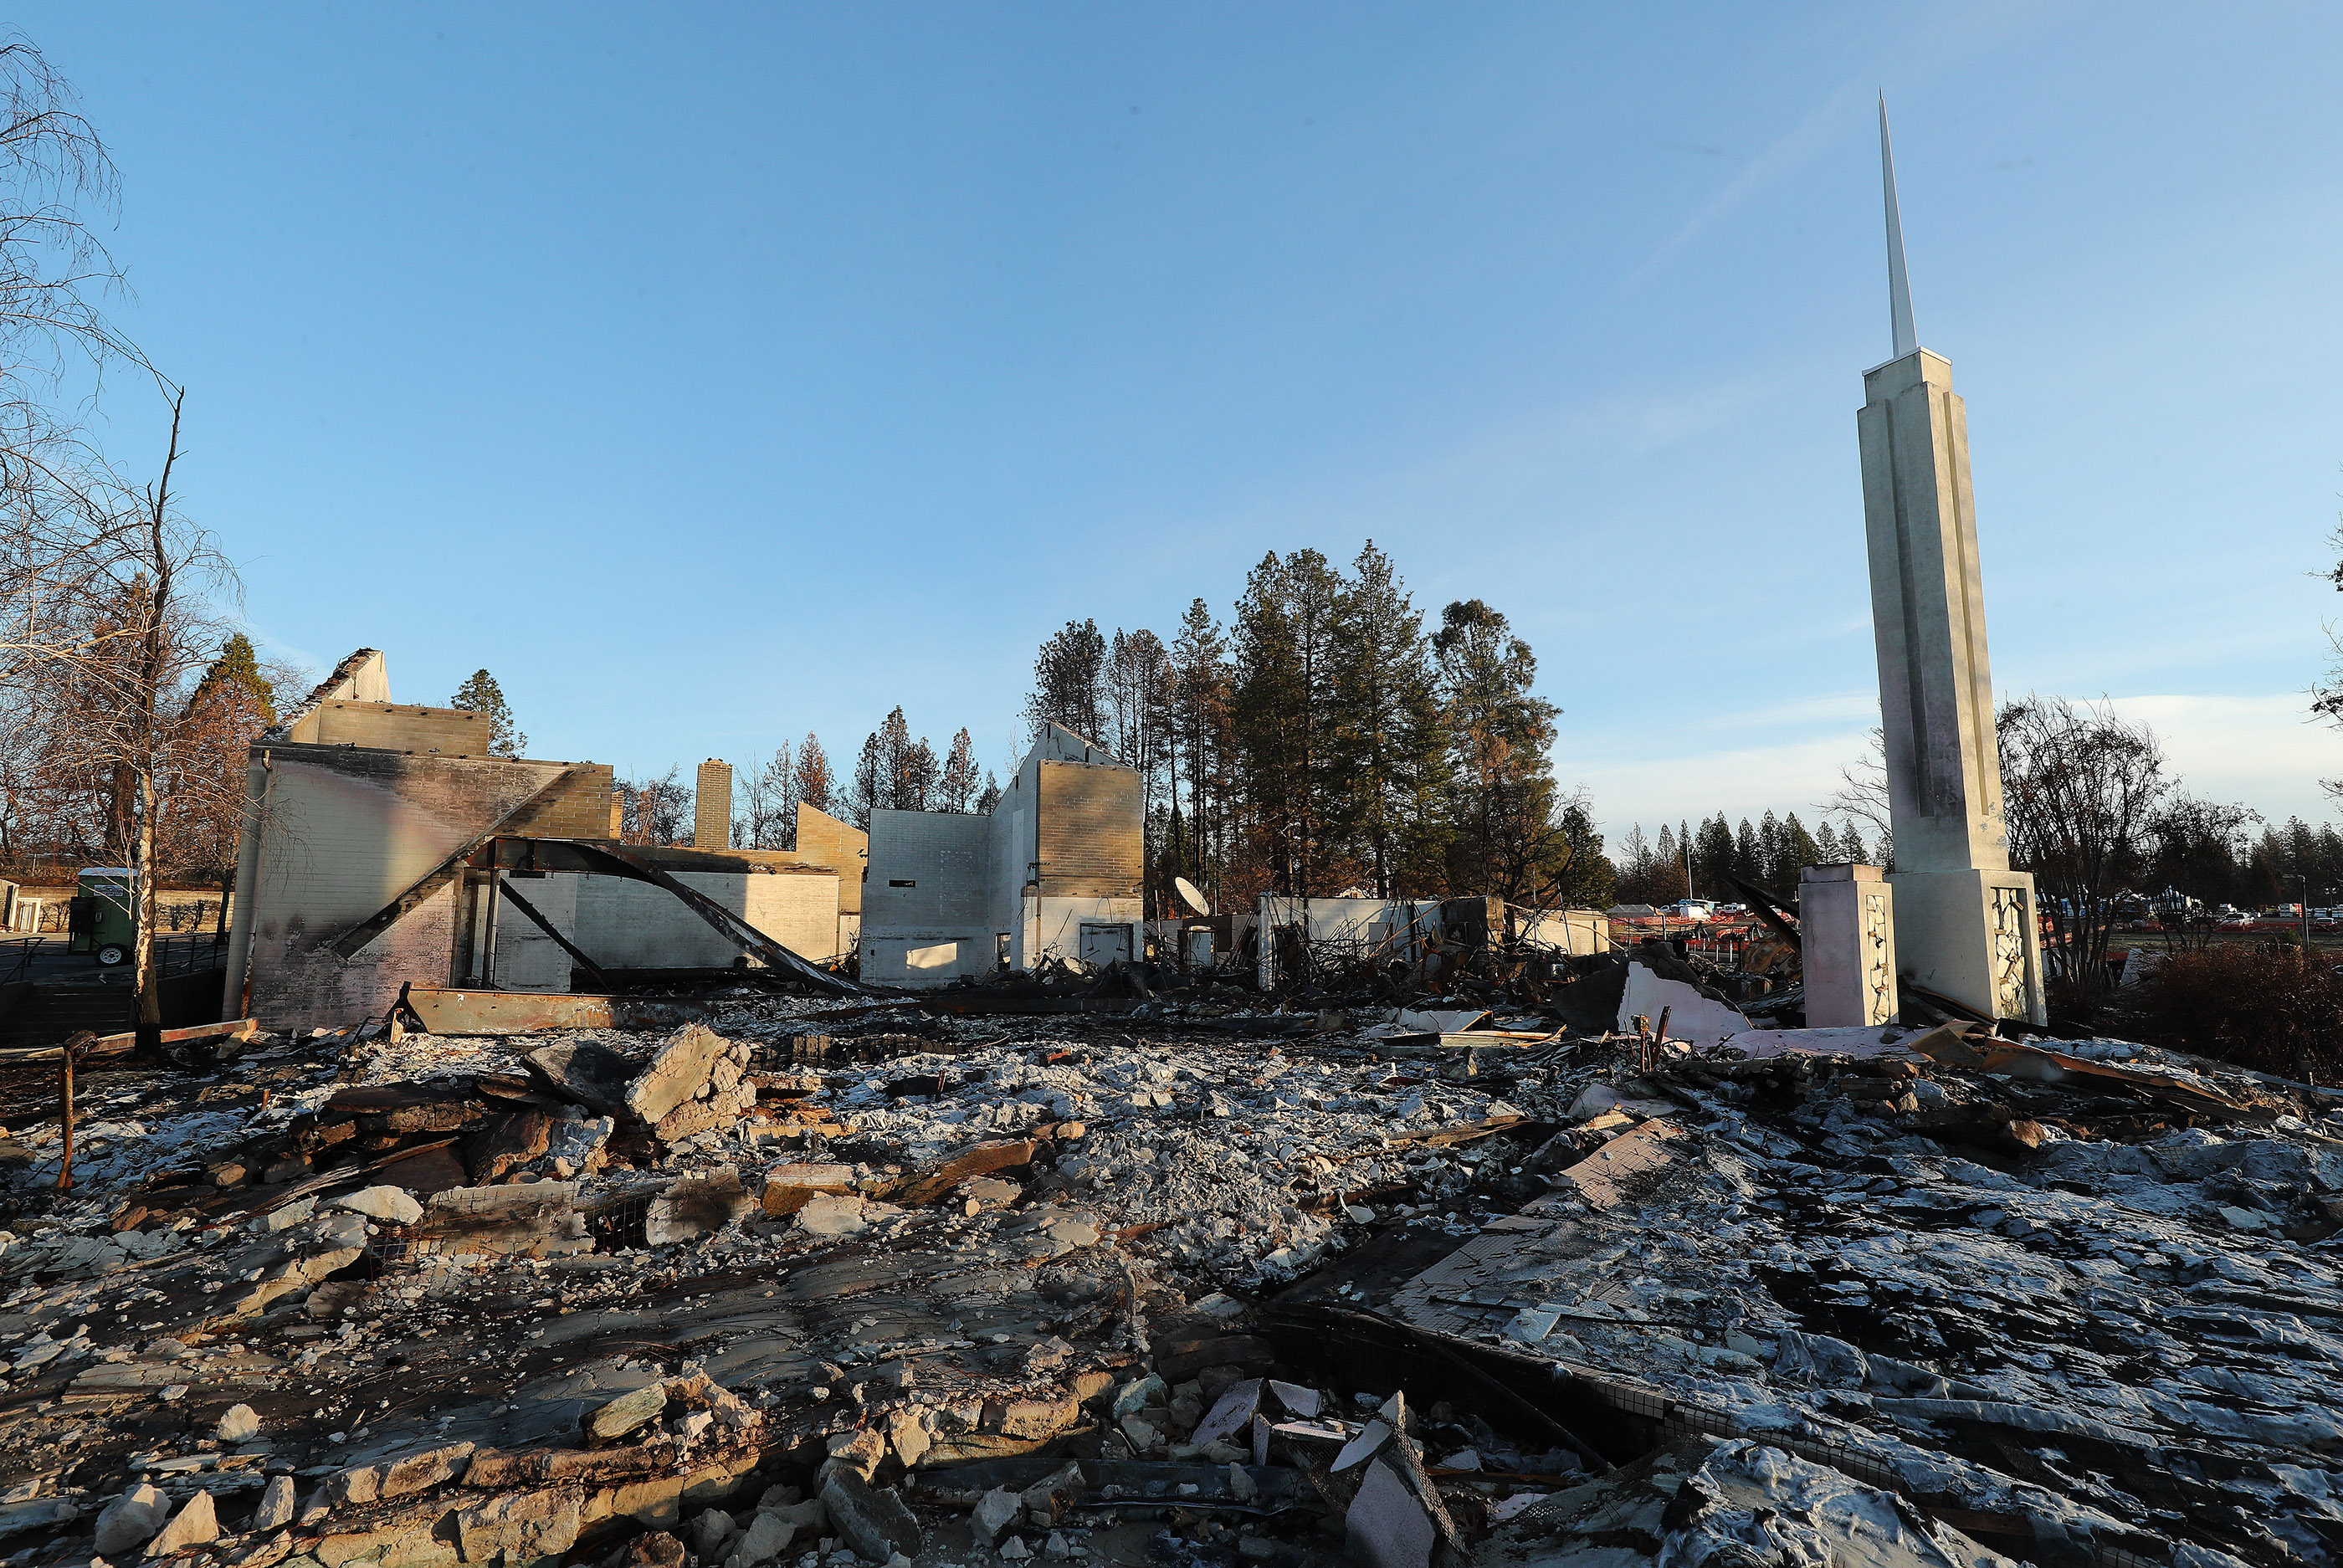 The Paradise LDS 1st Ward church was destroyed in Paradise, CA on Saturday, Jan. 12, 2019 two months after Campfire destroyed 1400 homes and hundreds of businesses.